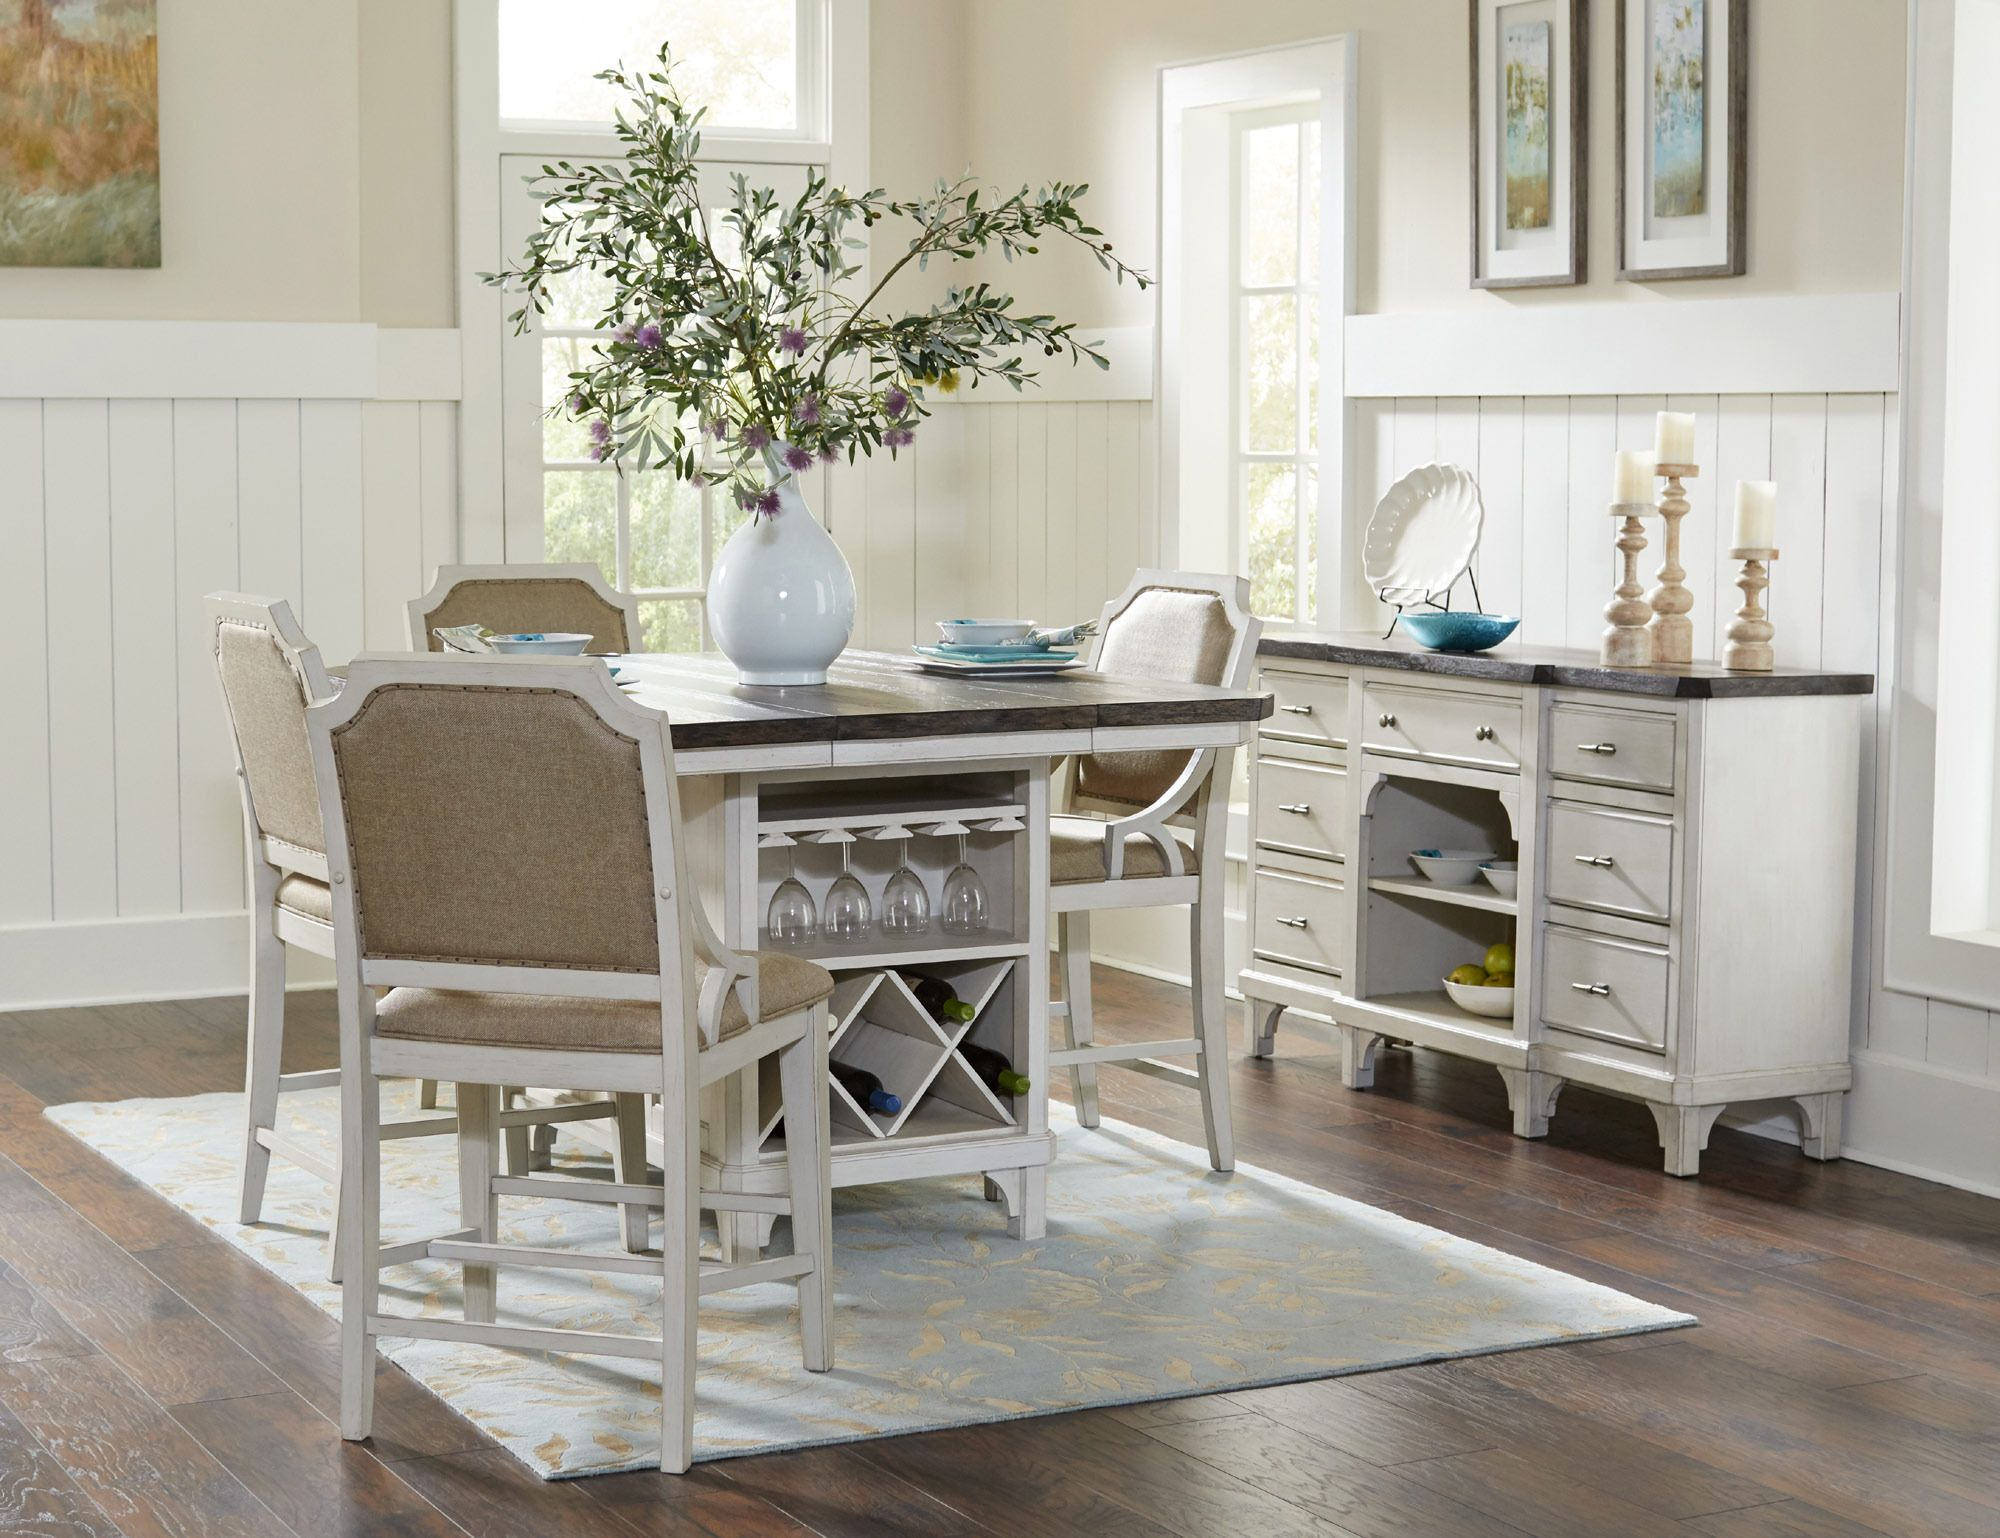 counter height kitchen tables Avalon Furniture Kitchen Island TableKitchen IslandsCounter Height